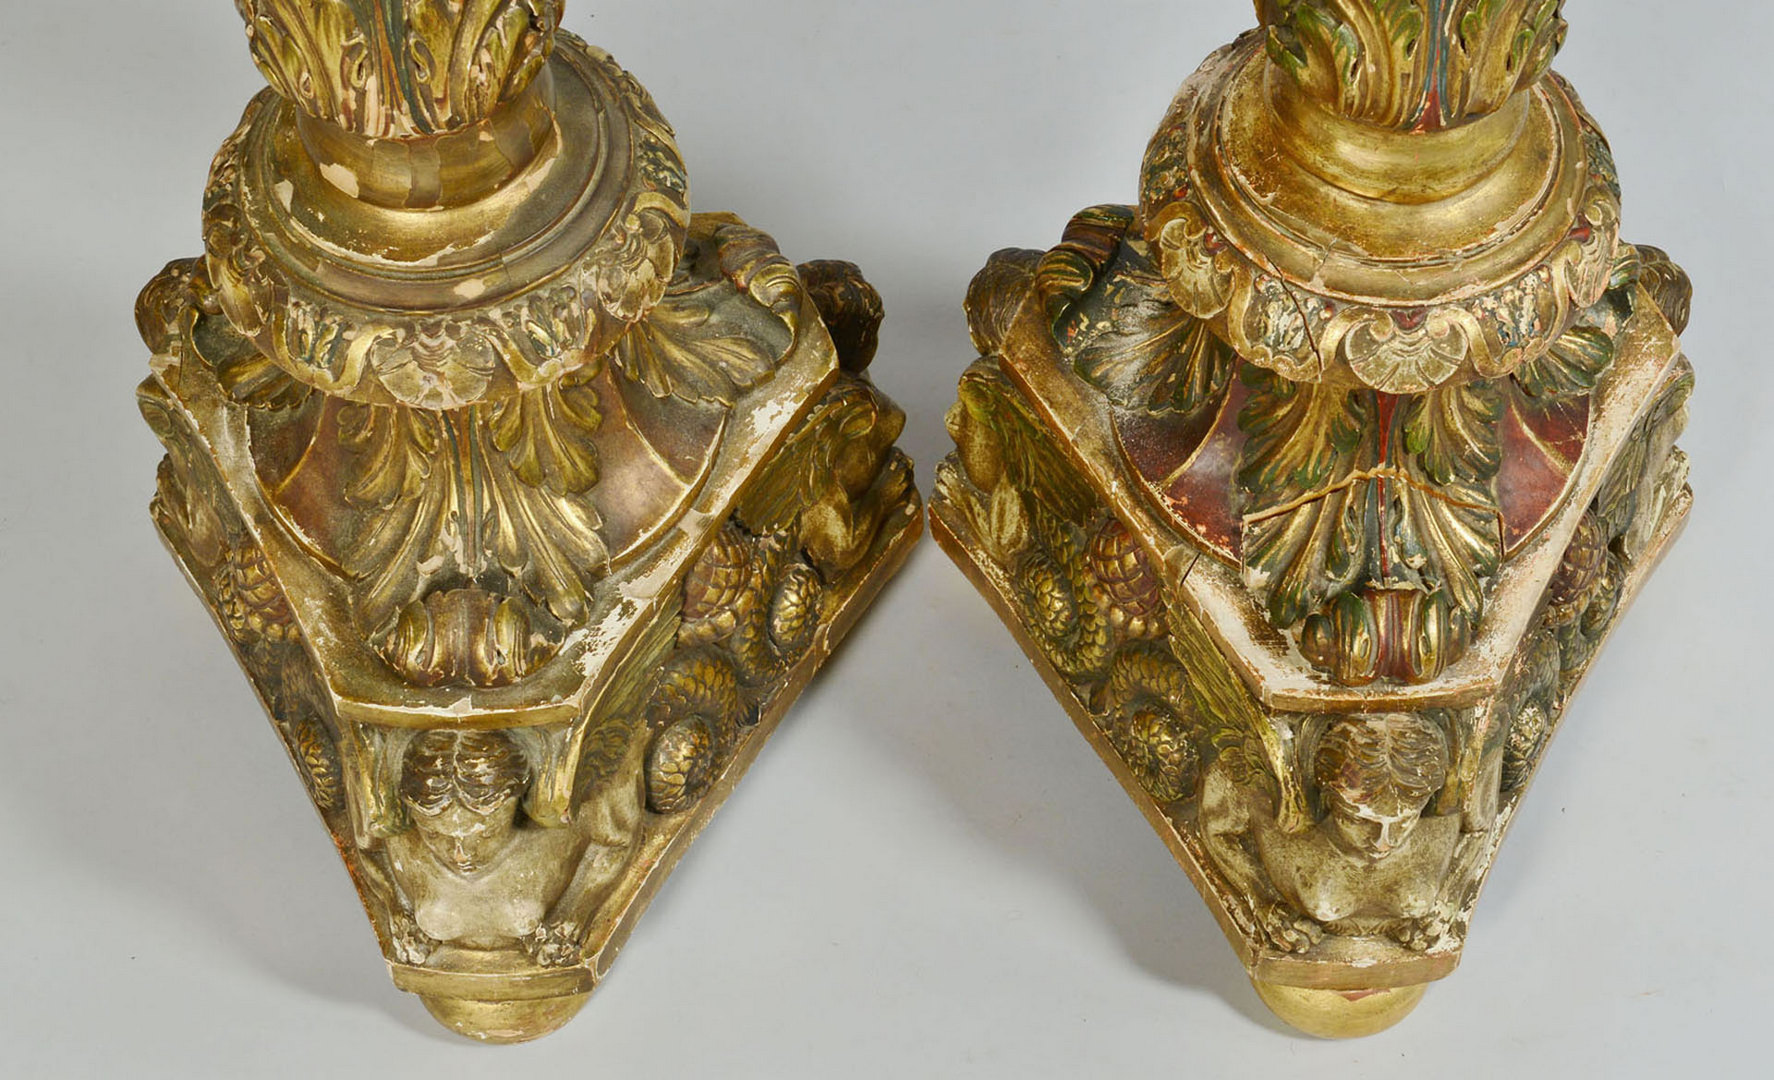 Lot 54: Baroque style carved and polychromed pedestals